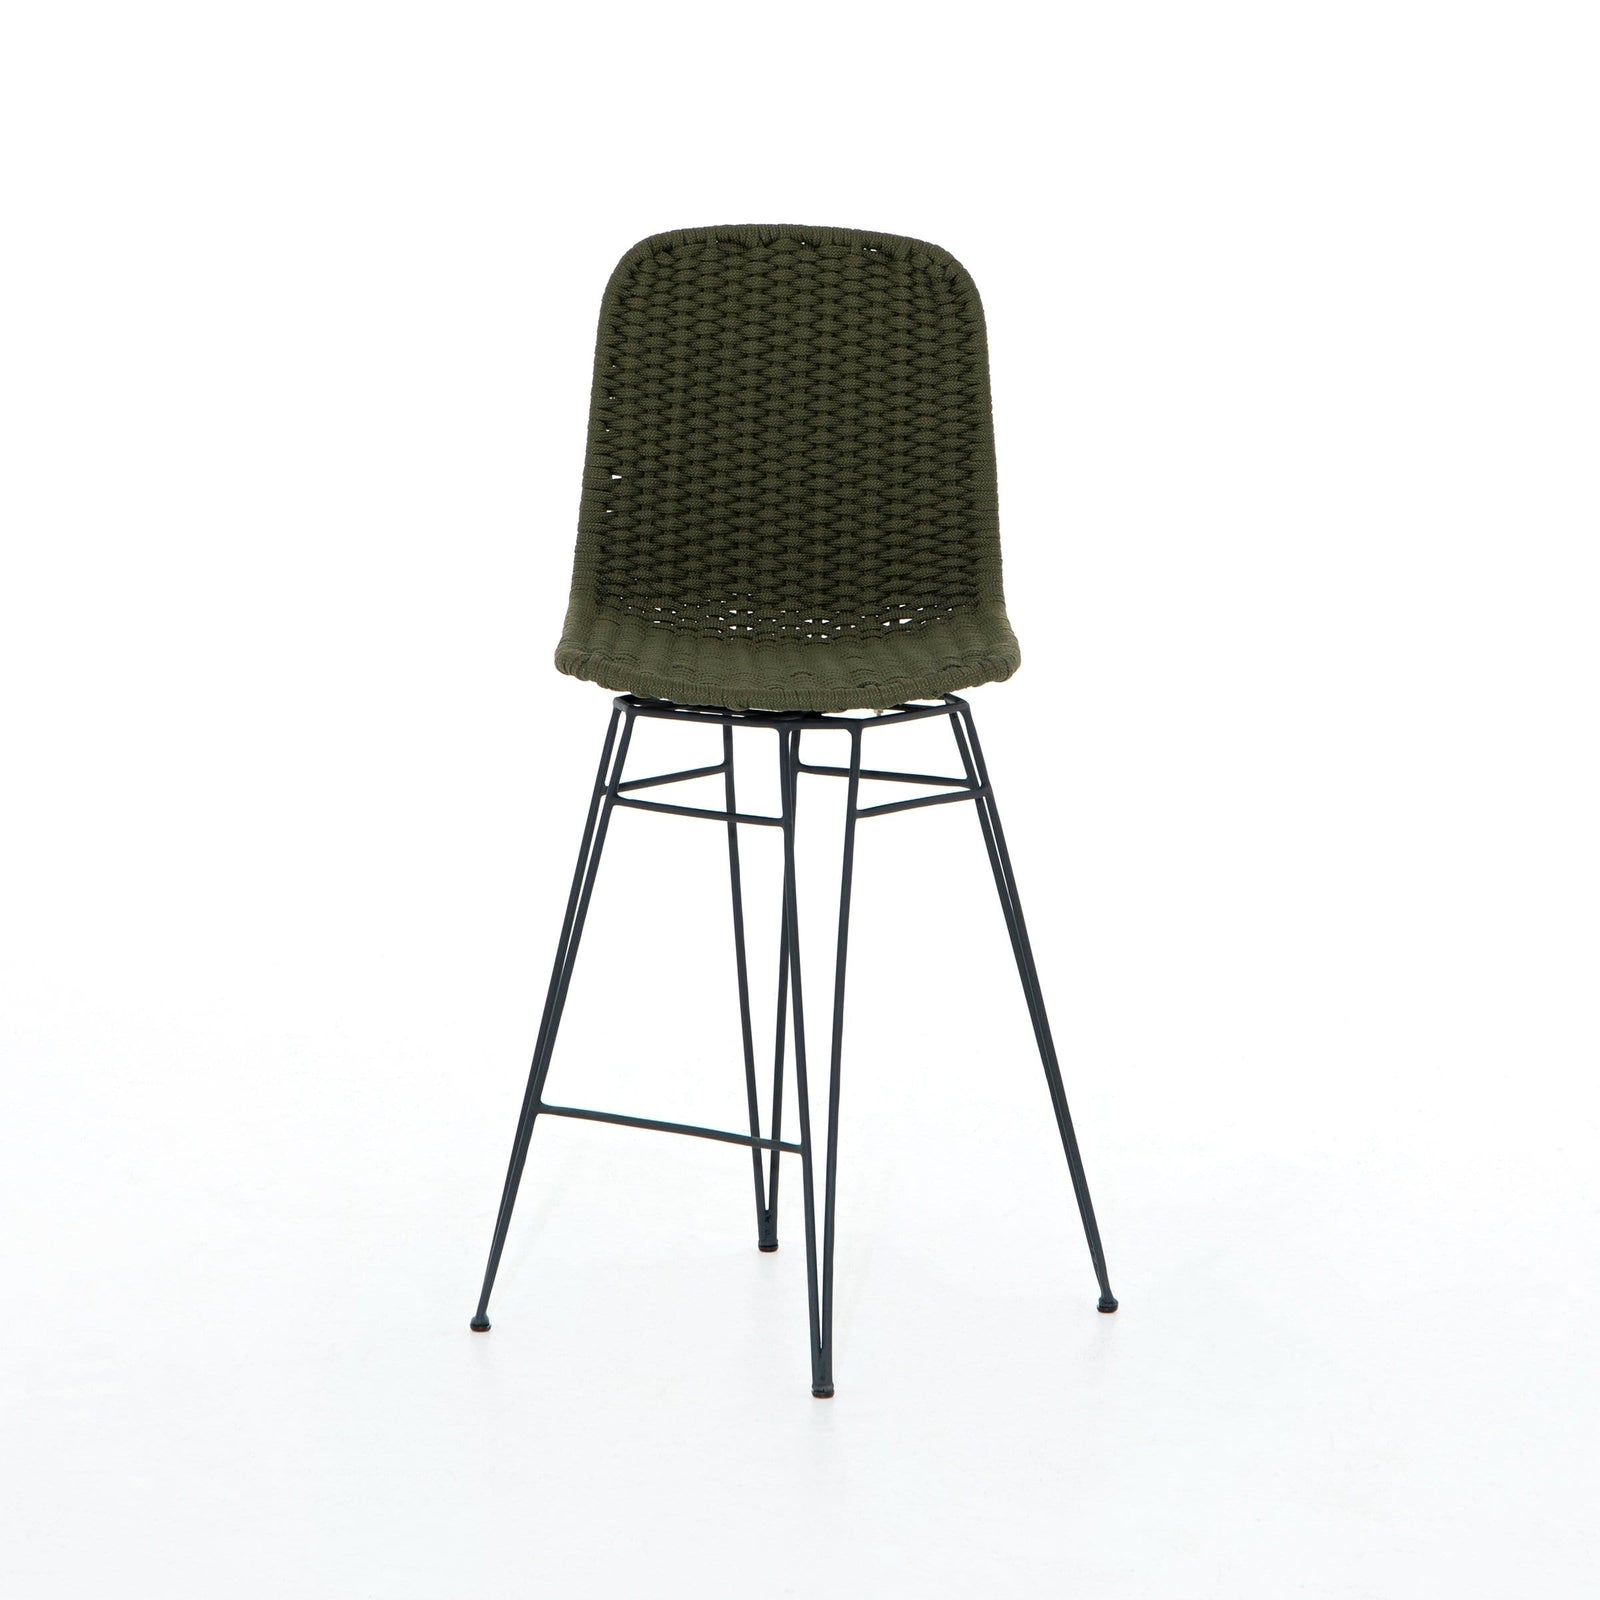 Four Hands Furniture Dema Outdoor Swivel Counter Stool